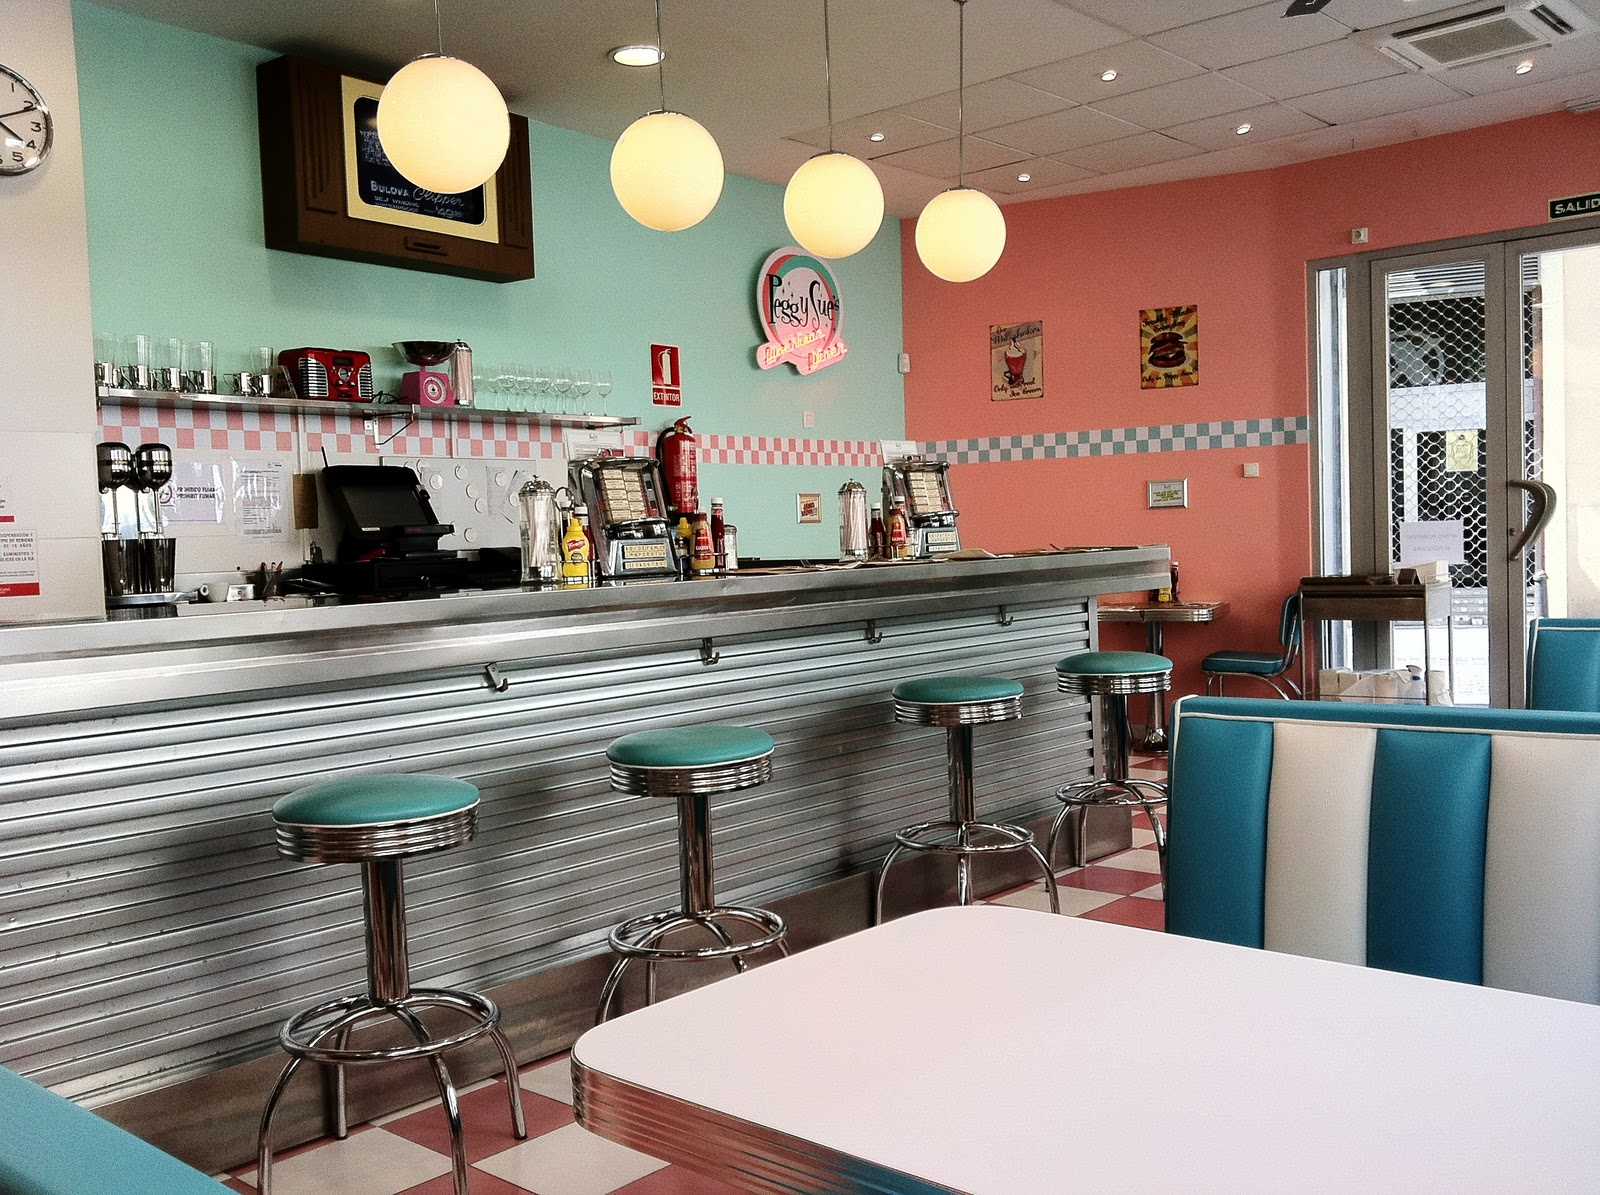 50 39 s american diner on pinterest diners 50s diner and retro for 1950s decoration